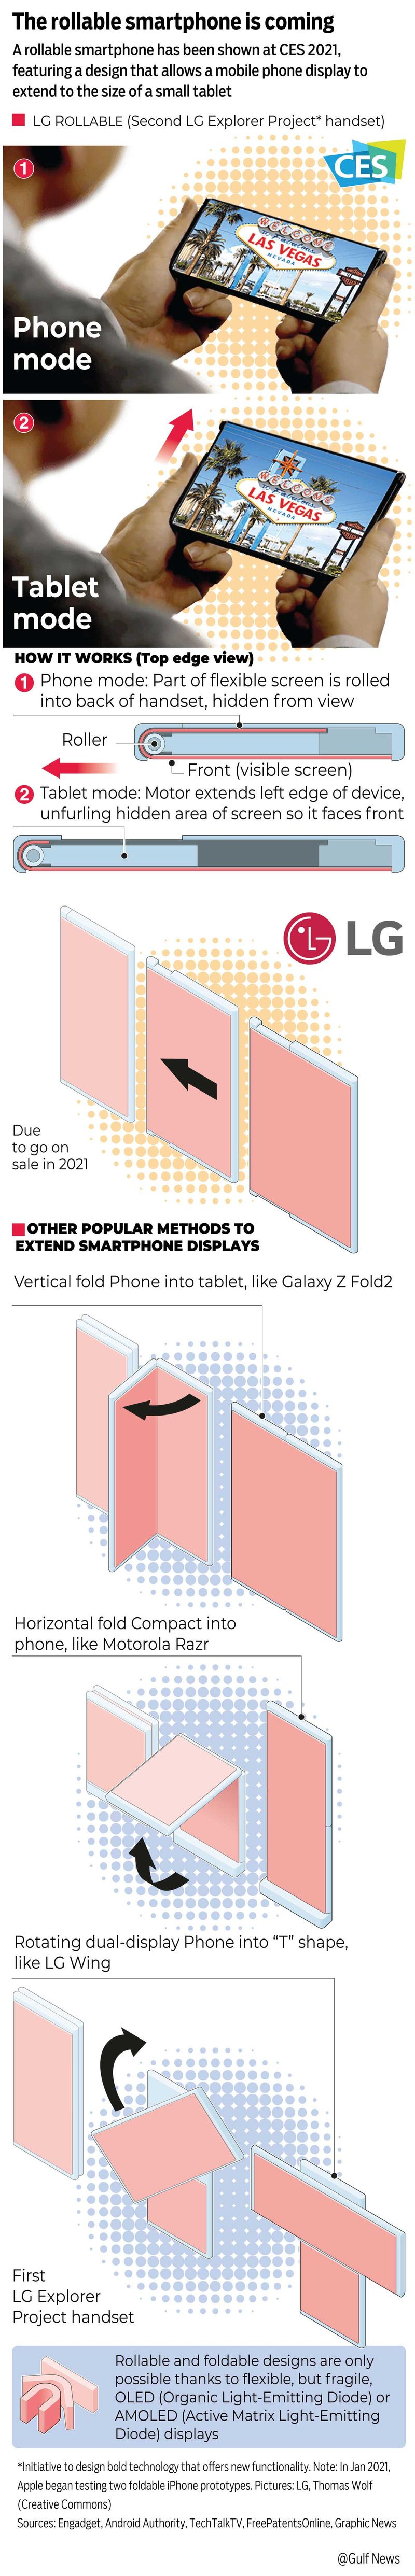 20210118 rollable smartphone